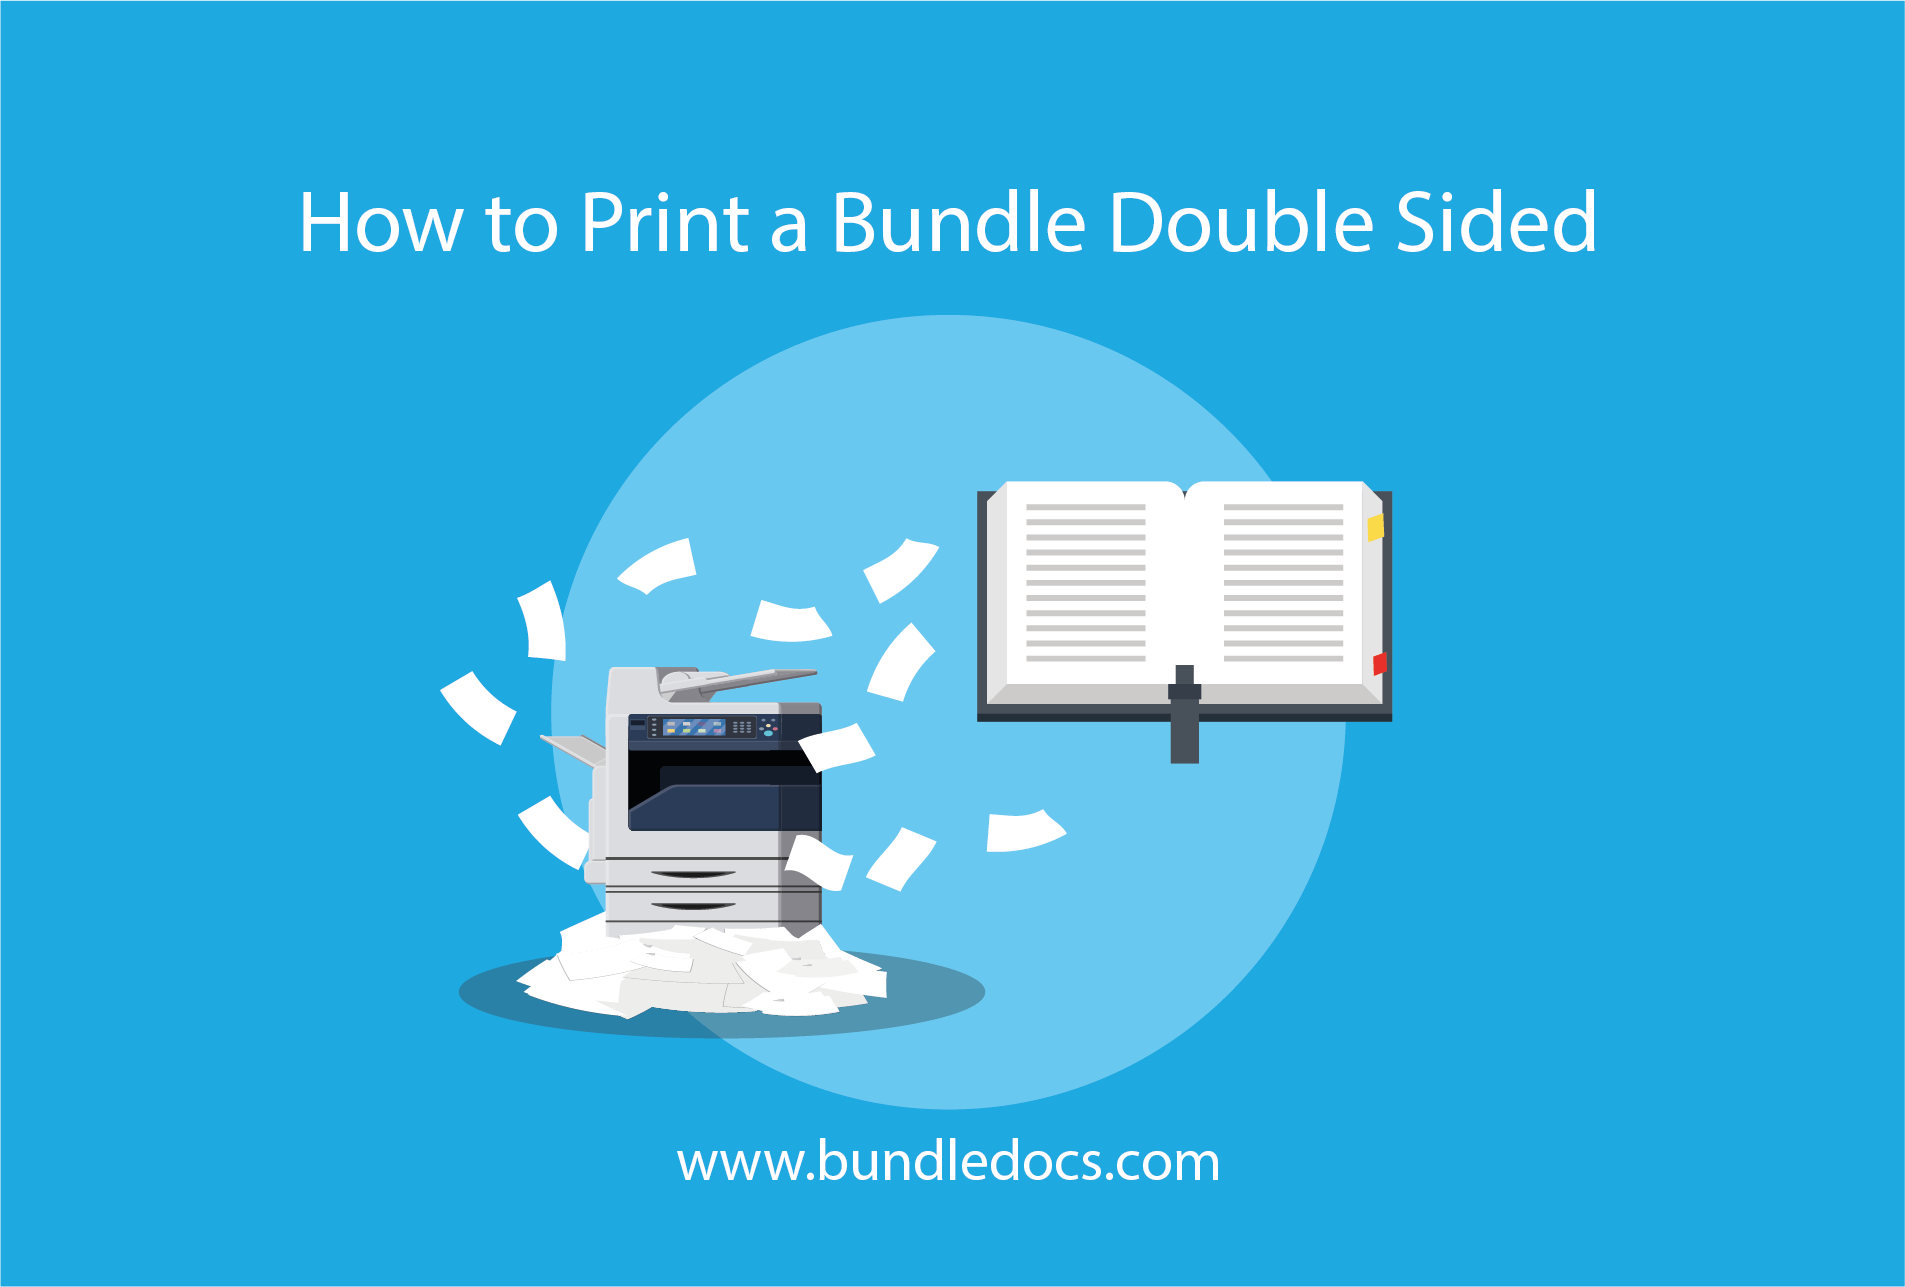 How_To_Print_Trial_Bundle_Double_Sided_Printing_Bundledocs.png